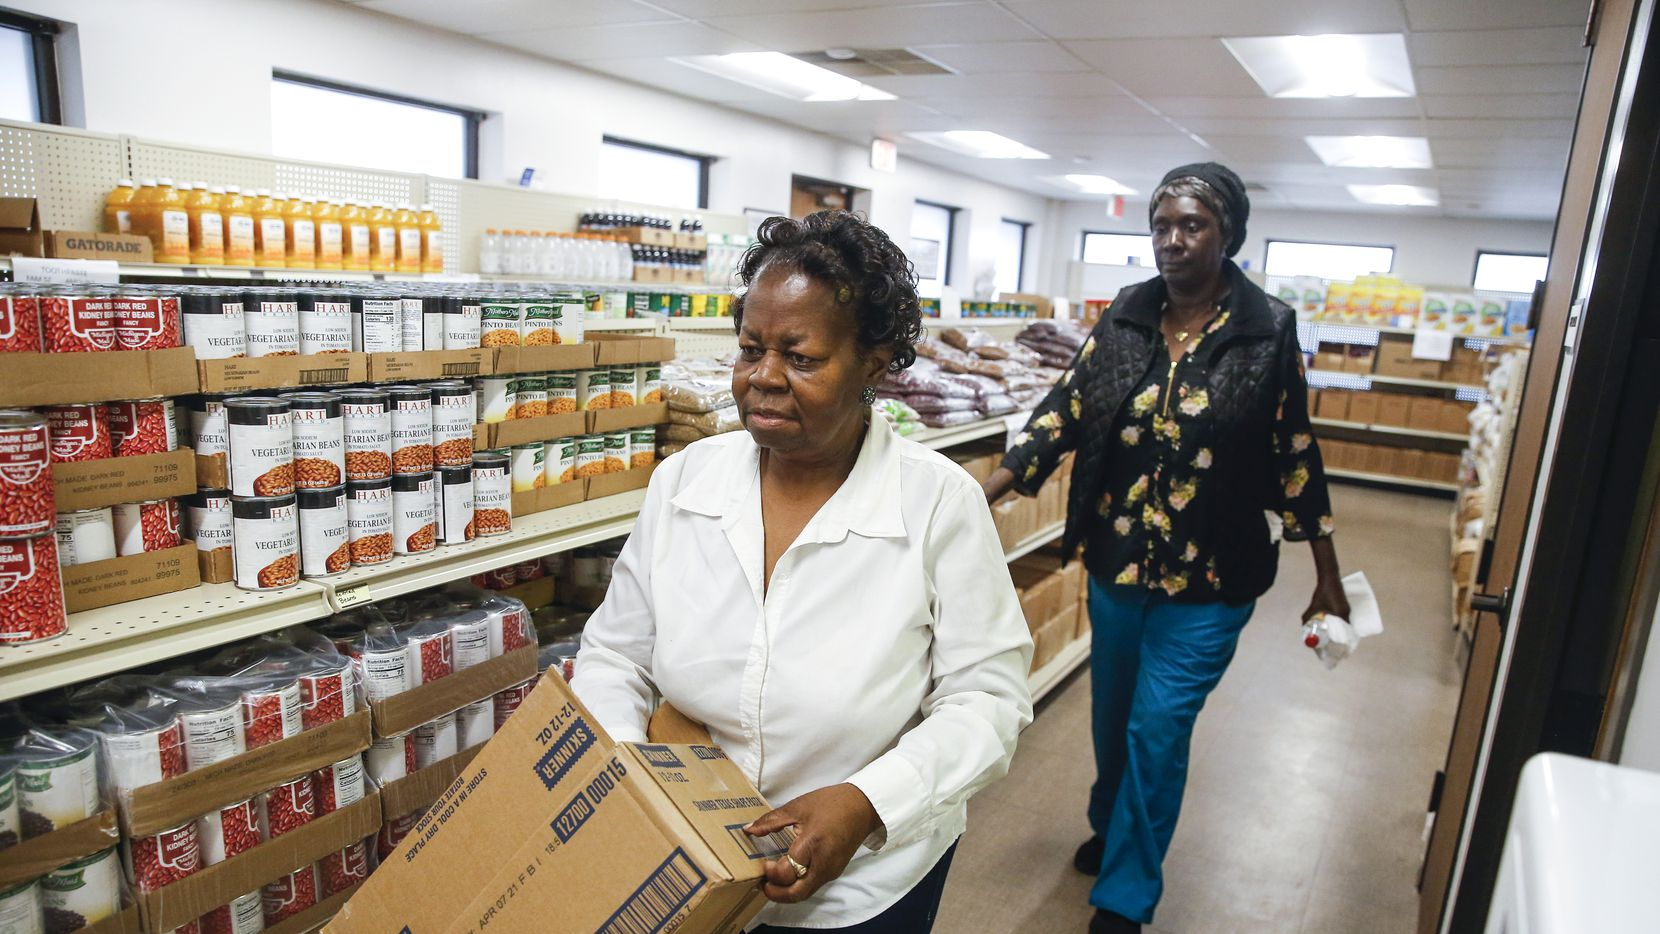 Betty Rayson, left, and Gladys Coleman stock food pantry shelves at Harmony Community Development Corporation on Thursday, Nov. 21, 2019 in Dallas. (Ryan Michalesko/The Dallas Morning News)